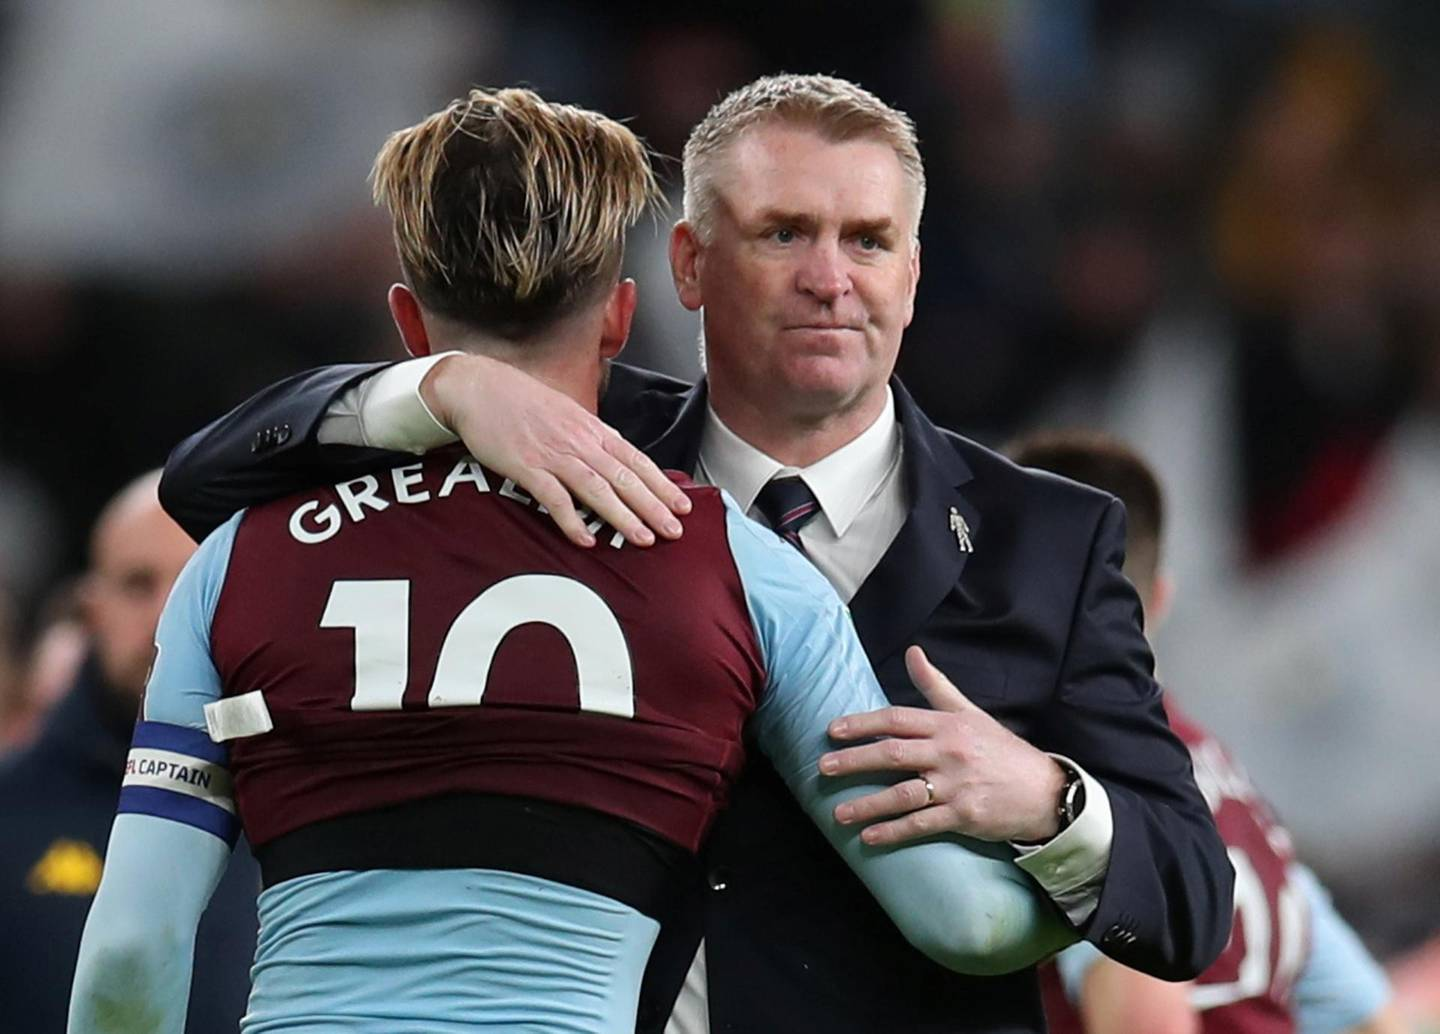 """Soccer Football - Carabao Cup Final - Aston Villa v Manchester City - Wembley Stadium, London, Britain - March 1, 2020  Aston Villa's Jack Grealish and Aston Villa manager Dean Smith hug after the match  REUTERS/Chris Radburn  EDITORIAL USE ONLY. No use with unauthorized audio, video, data, fixture lists, club/league logos or """"live"""" services. Online in-match use limited to 75 images, no video emulation. No use in betting, games or single club/league/player publications.  Please contact your account representative for further details."""